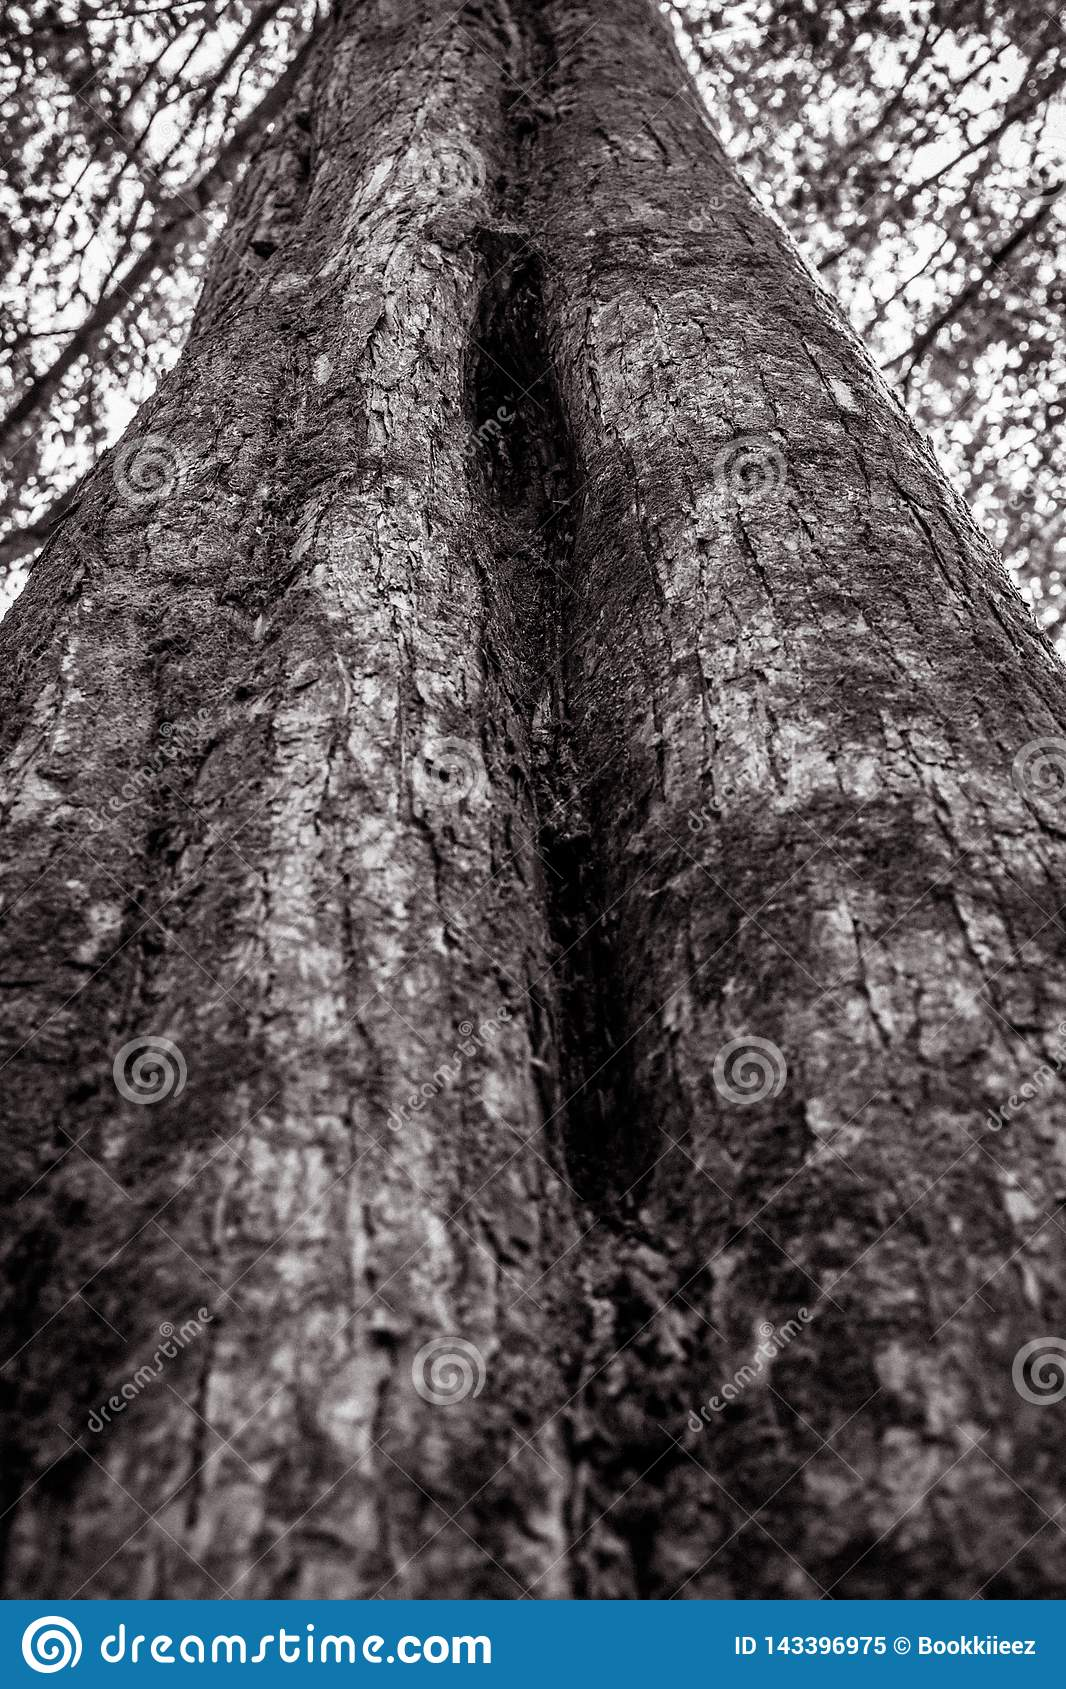 Texture of the big tree in black and white tone.